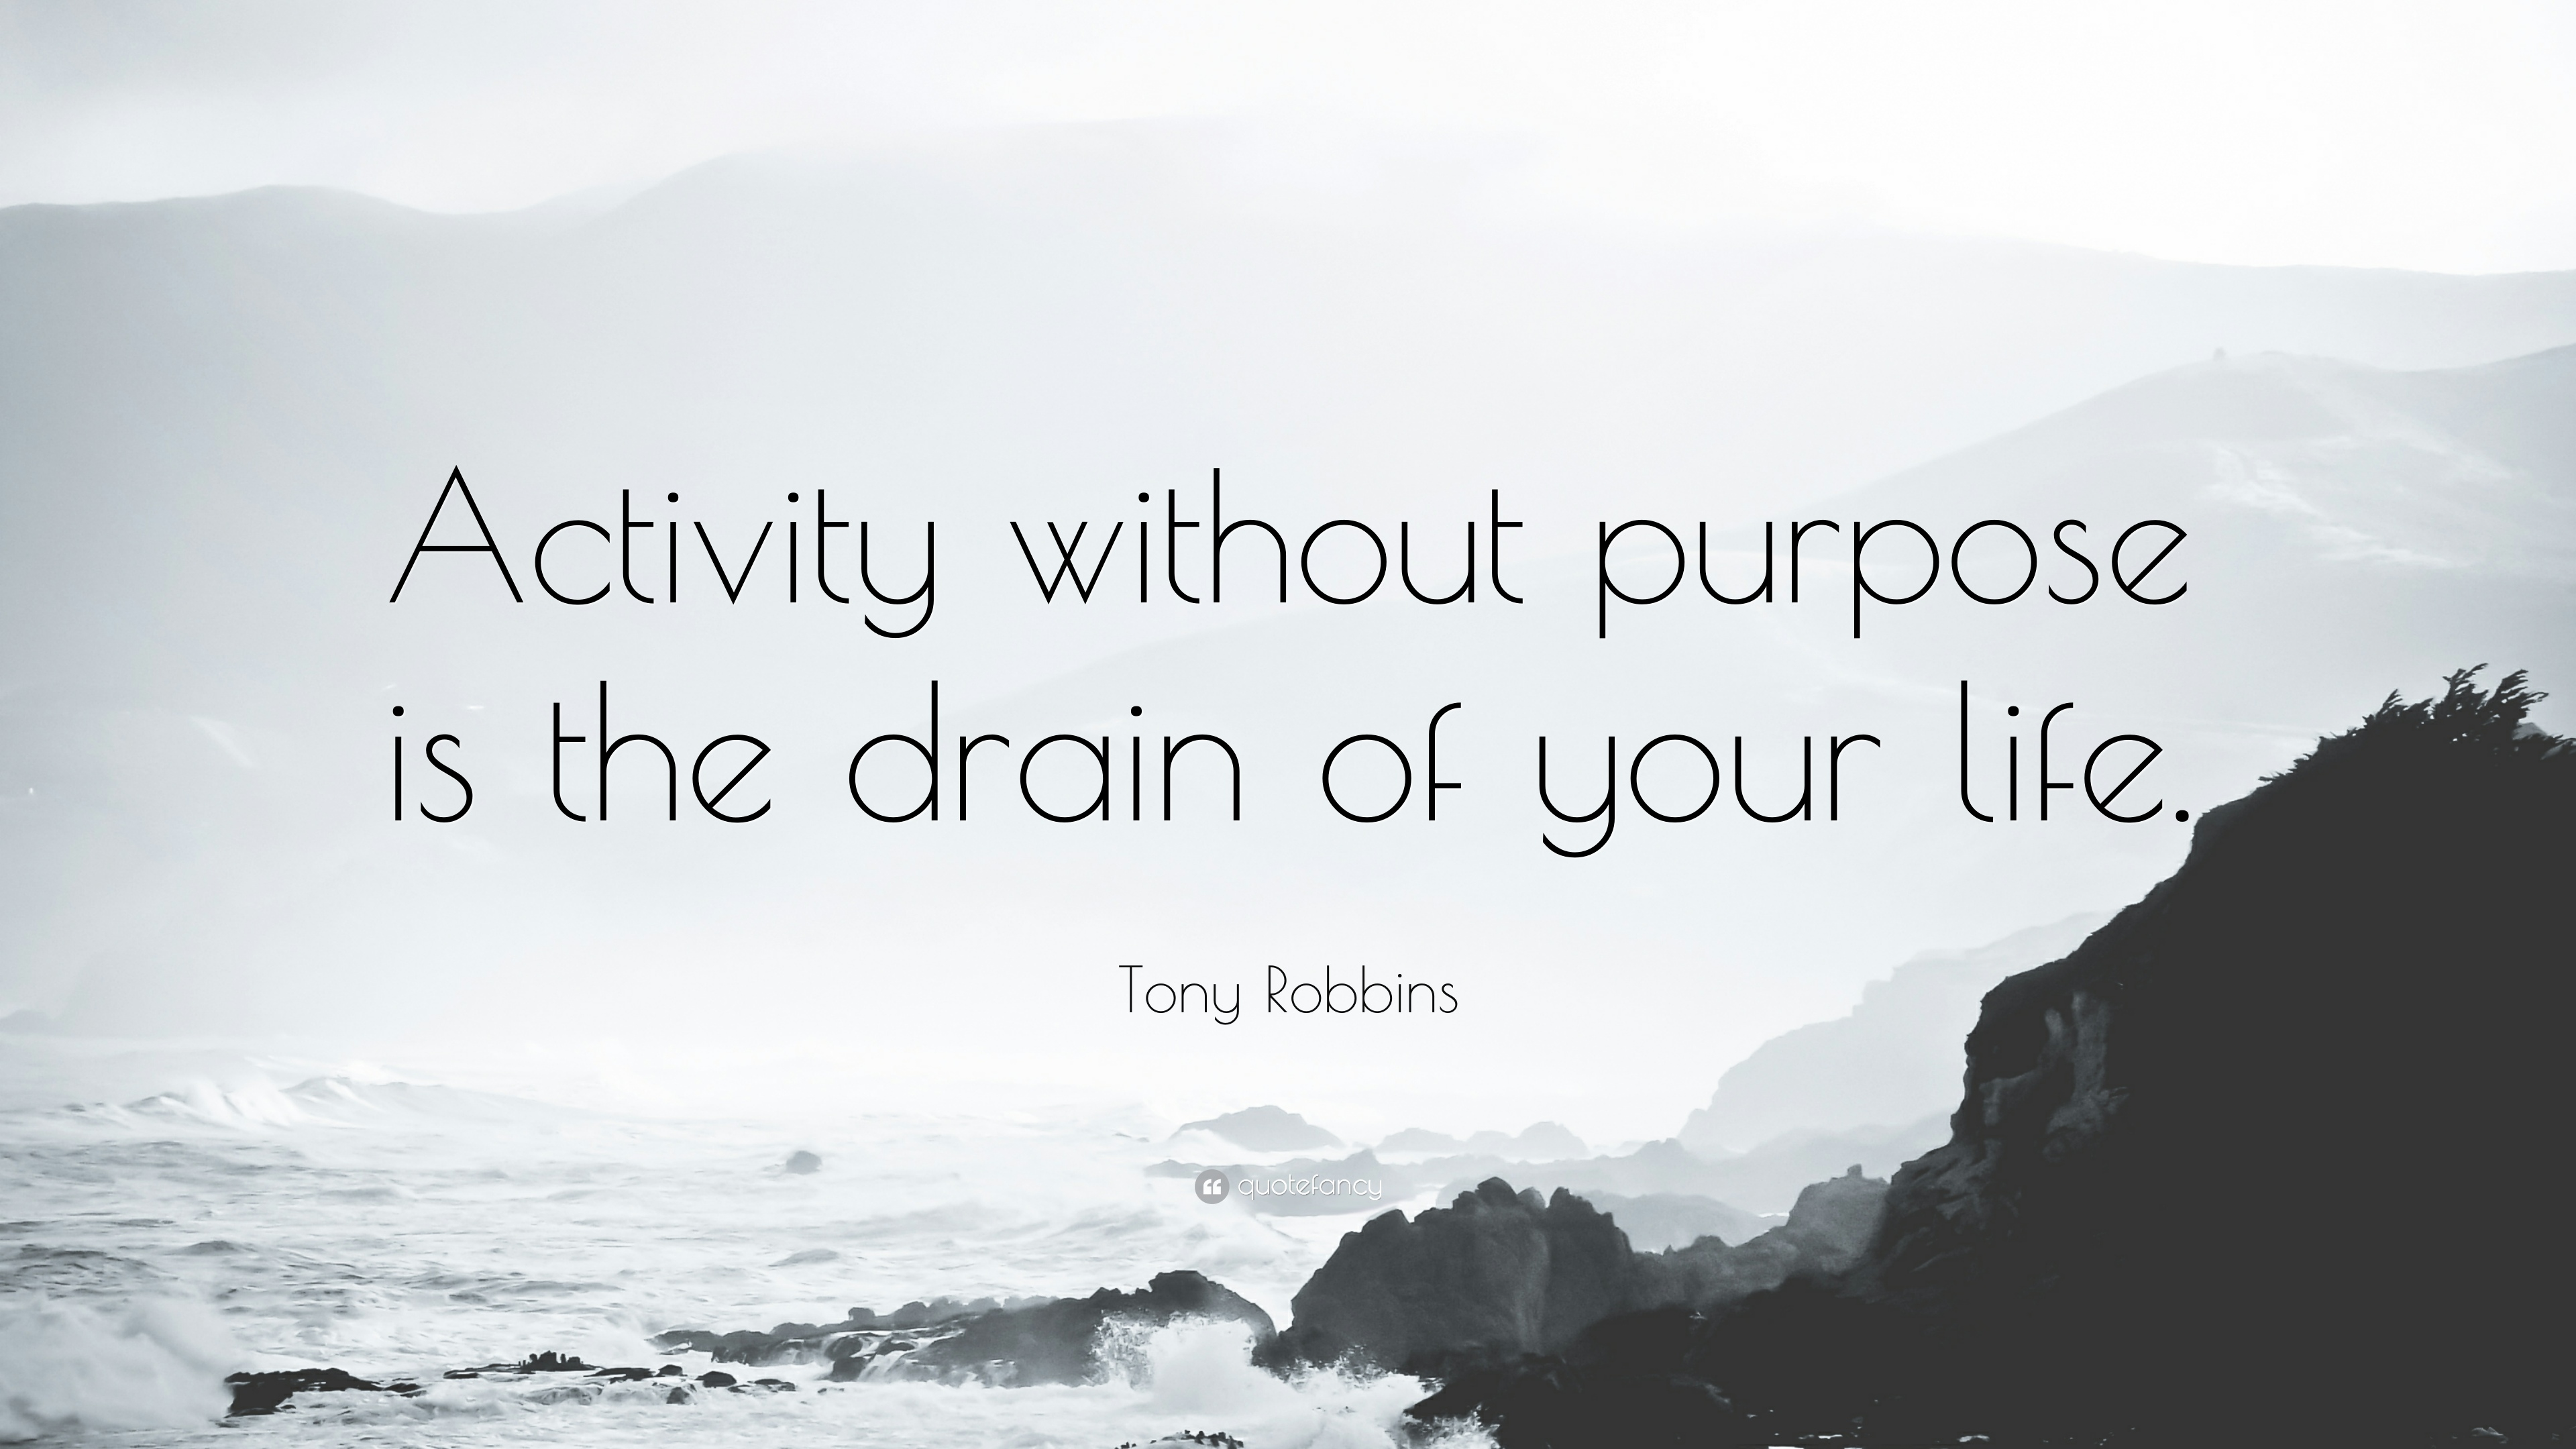 Quotes About Purpose Quotes About Purpose 40 Wallpapers  Quotefancy